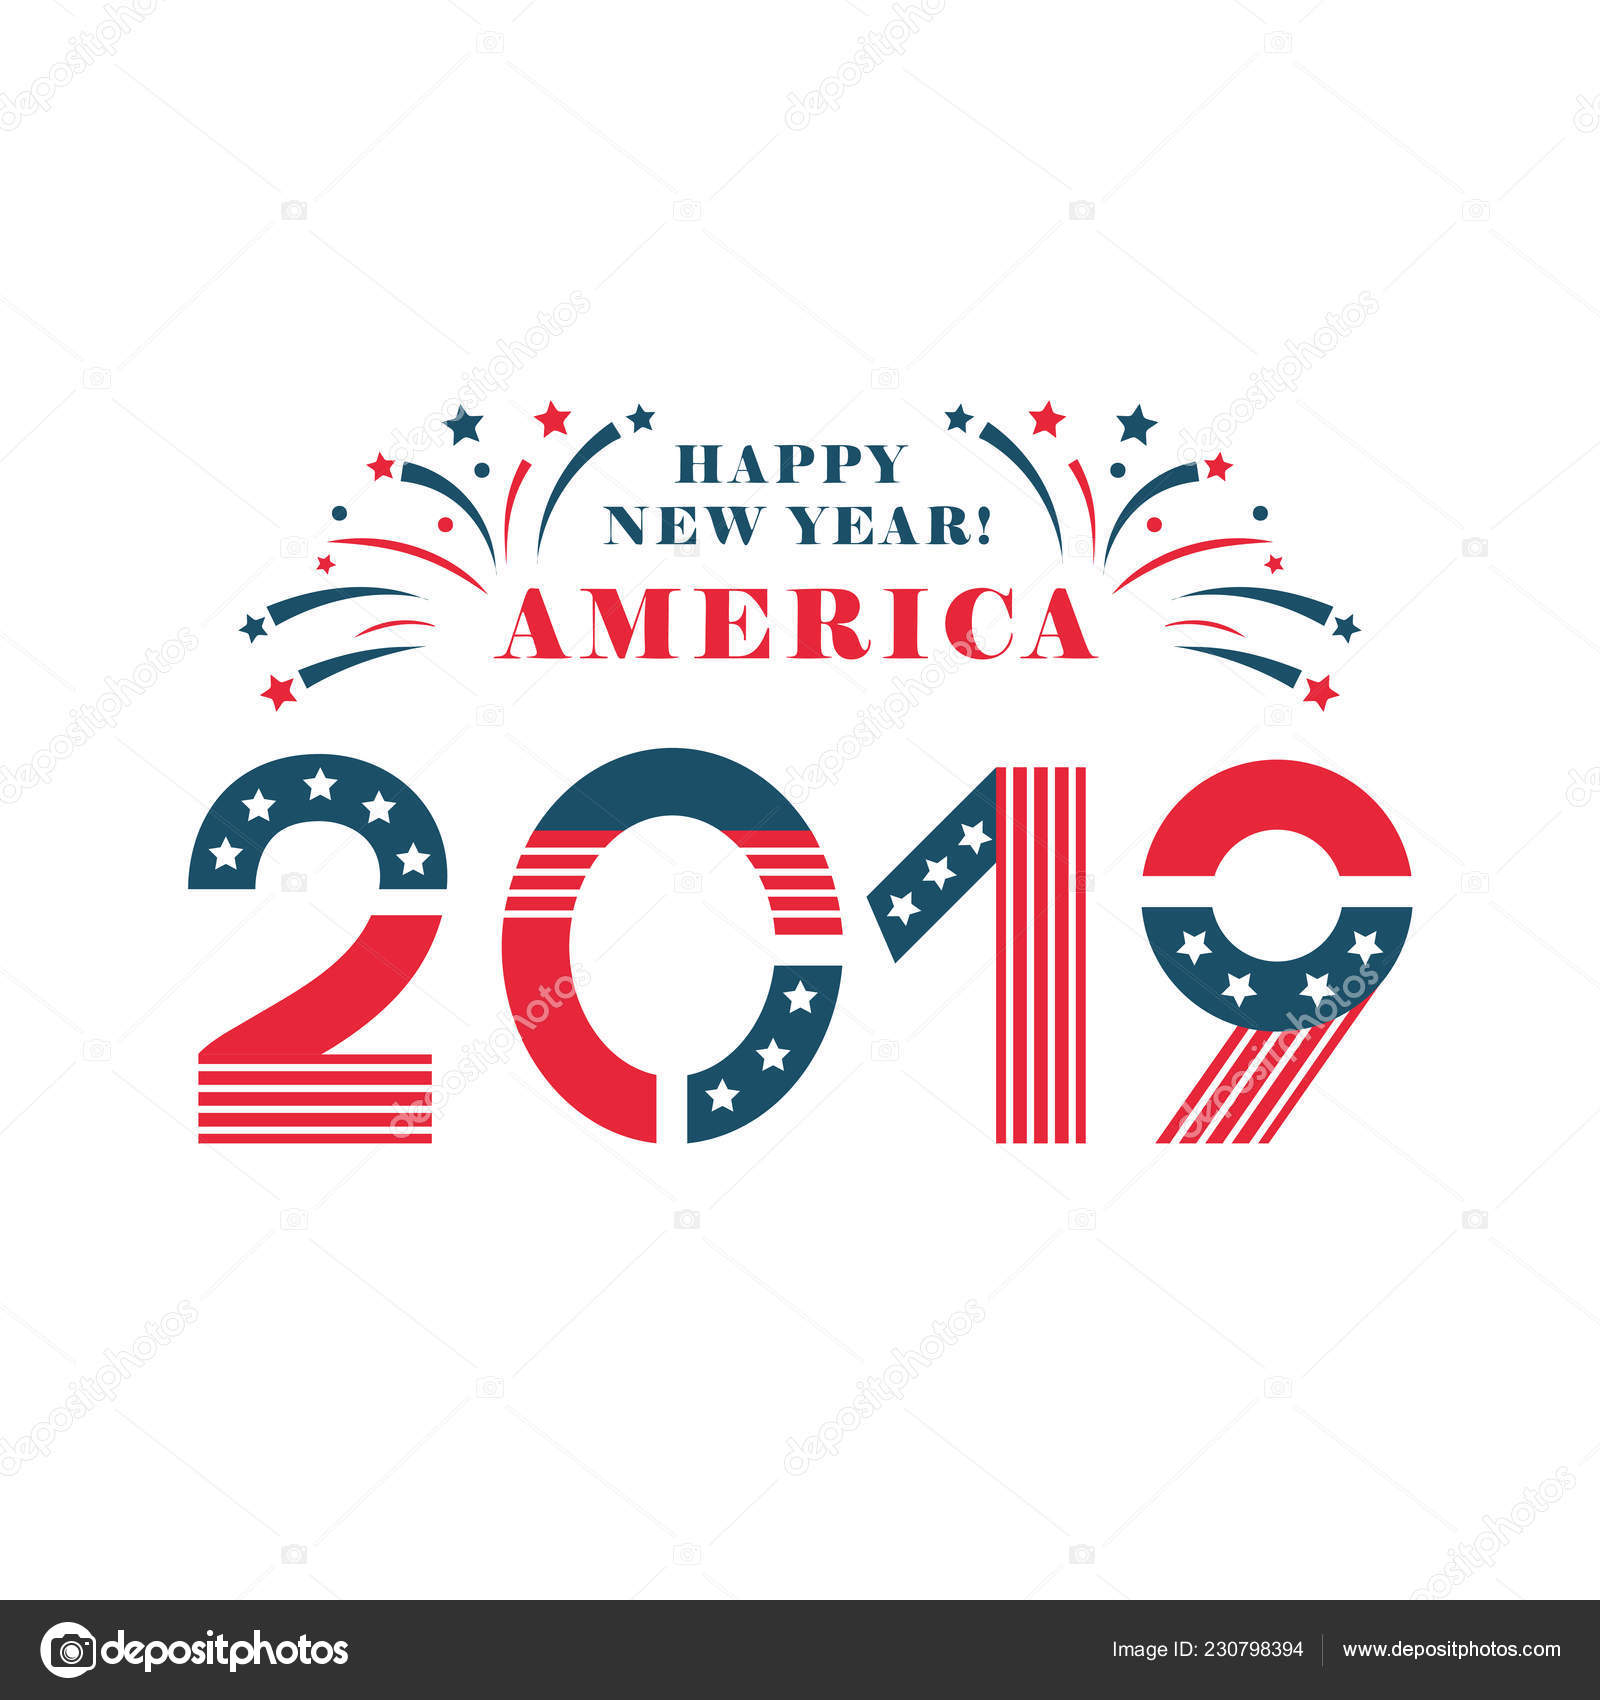 How Many Stars On The American Flag 2019